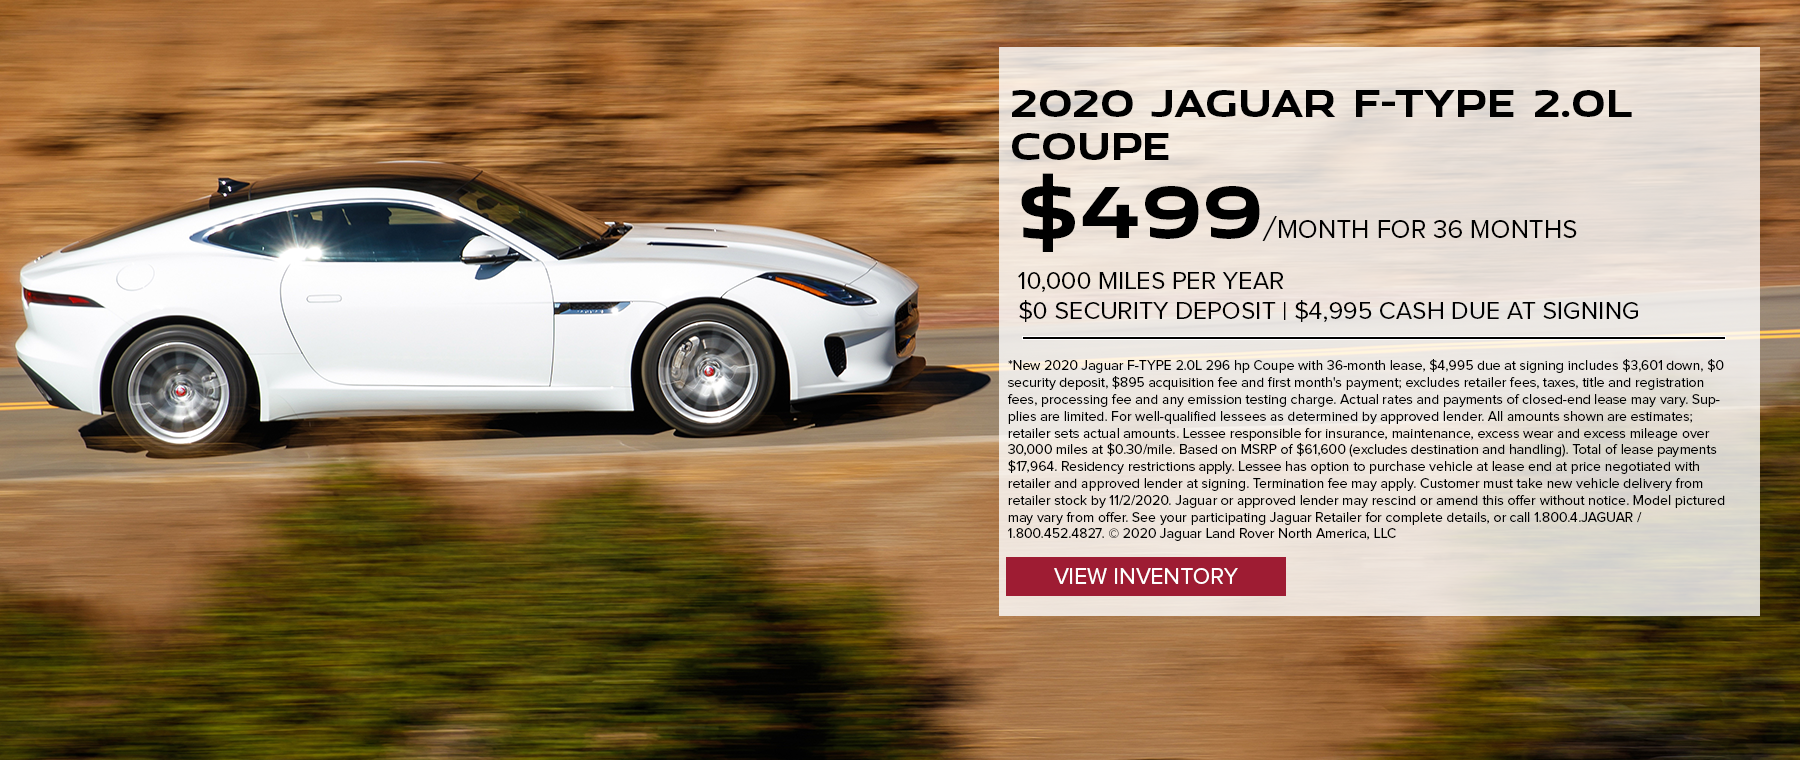 2020 JAGUAR F-TYPE 2.0L 296 HP COUPE. $499 PER MONTH. 36 MONTH LEASE TERM. $4,995 CASH DUE AT SIGNING. $0 SECURITY DEPOSIT. 10,000 MILES PER YEAR. EXCLUDES RETAILER FEES, TAXES, TITLE AND REGISTRATION FEES, PROCESSING FEE AND ANY EMISSION TESTING CHARGE. OFFER ENDS 11/2/2020.